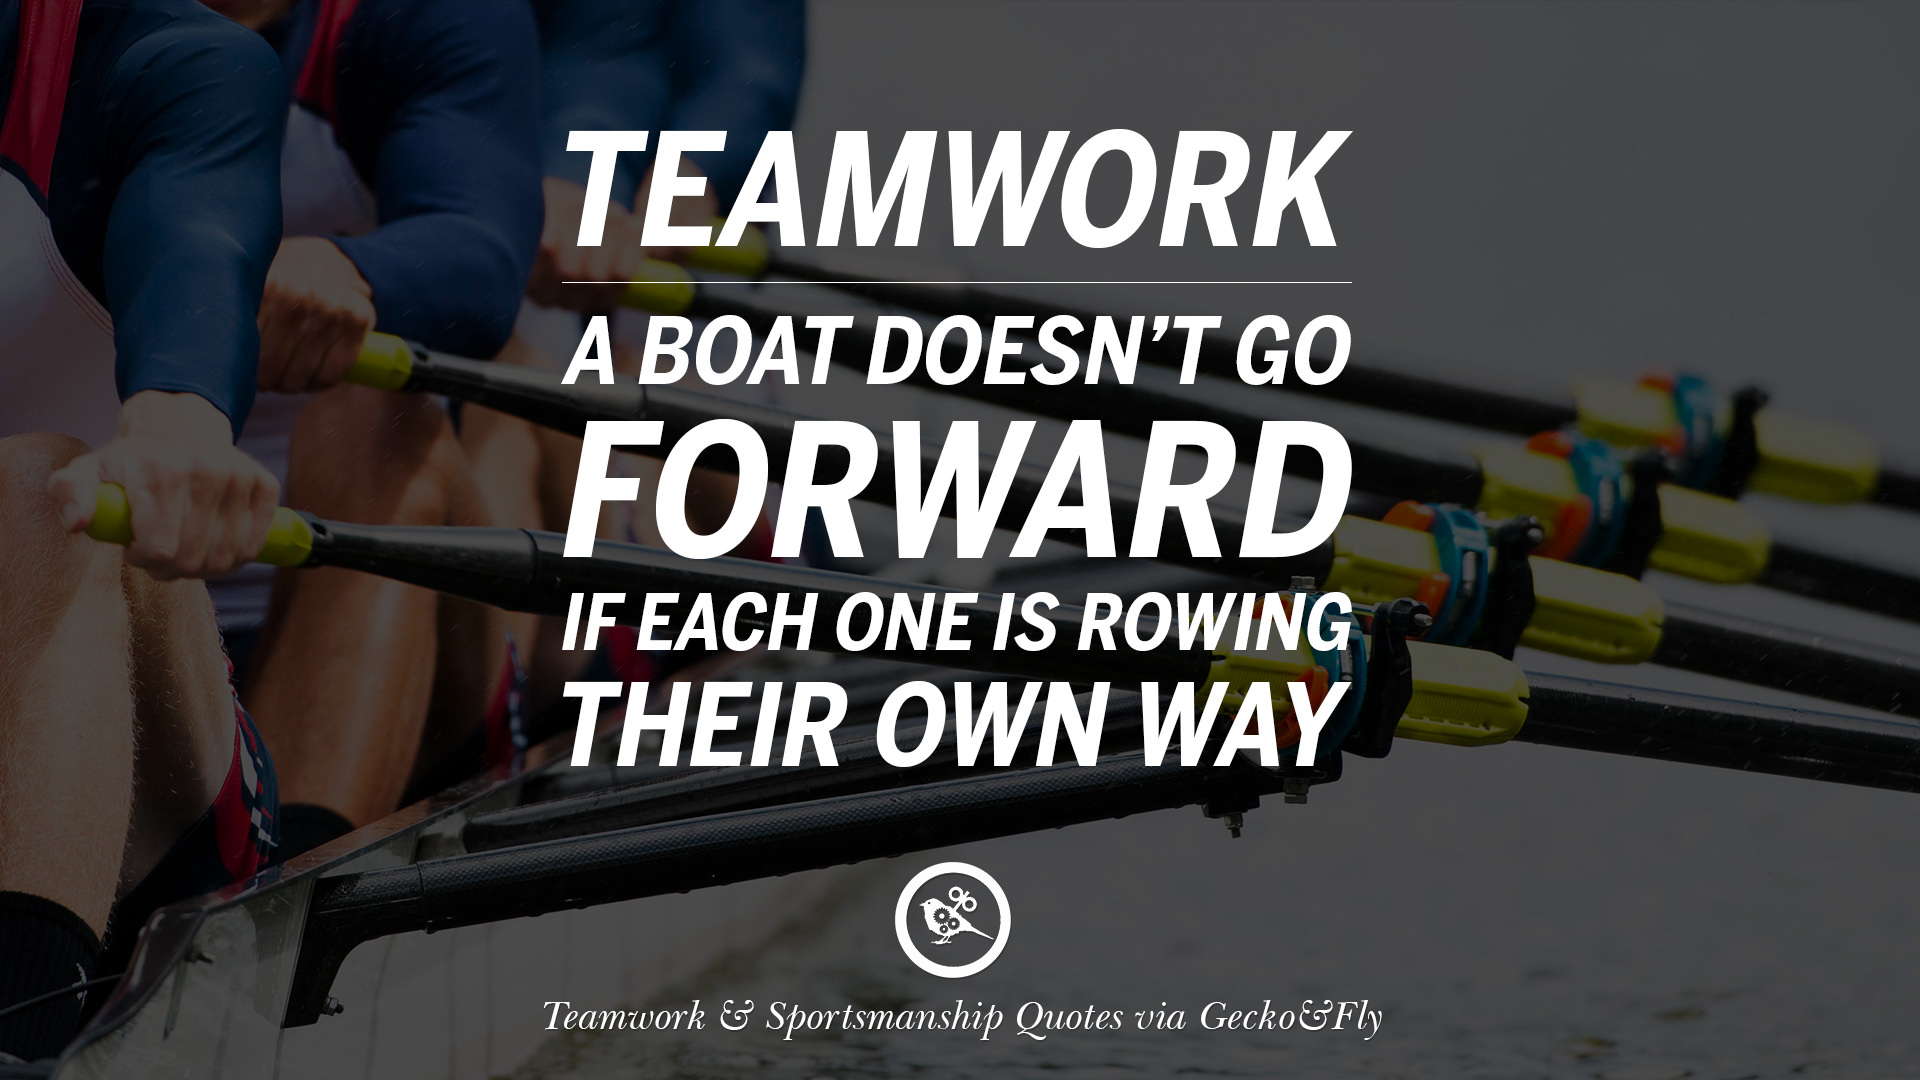 motivational quotes for athletes rowing professional resume motivational quotes for athletes rowing 24 motivational quotes to inspire runners shape magazine boat doesnt go